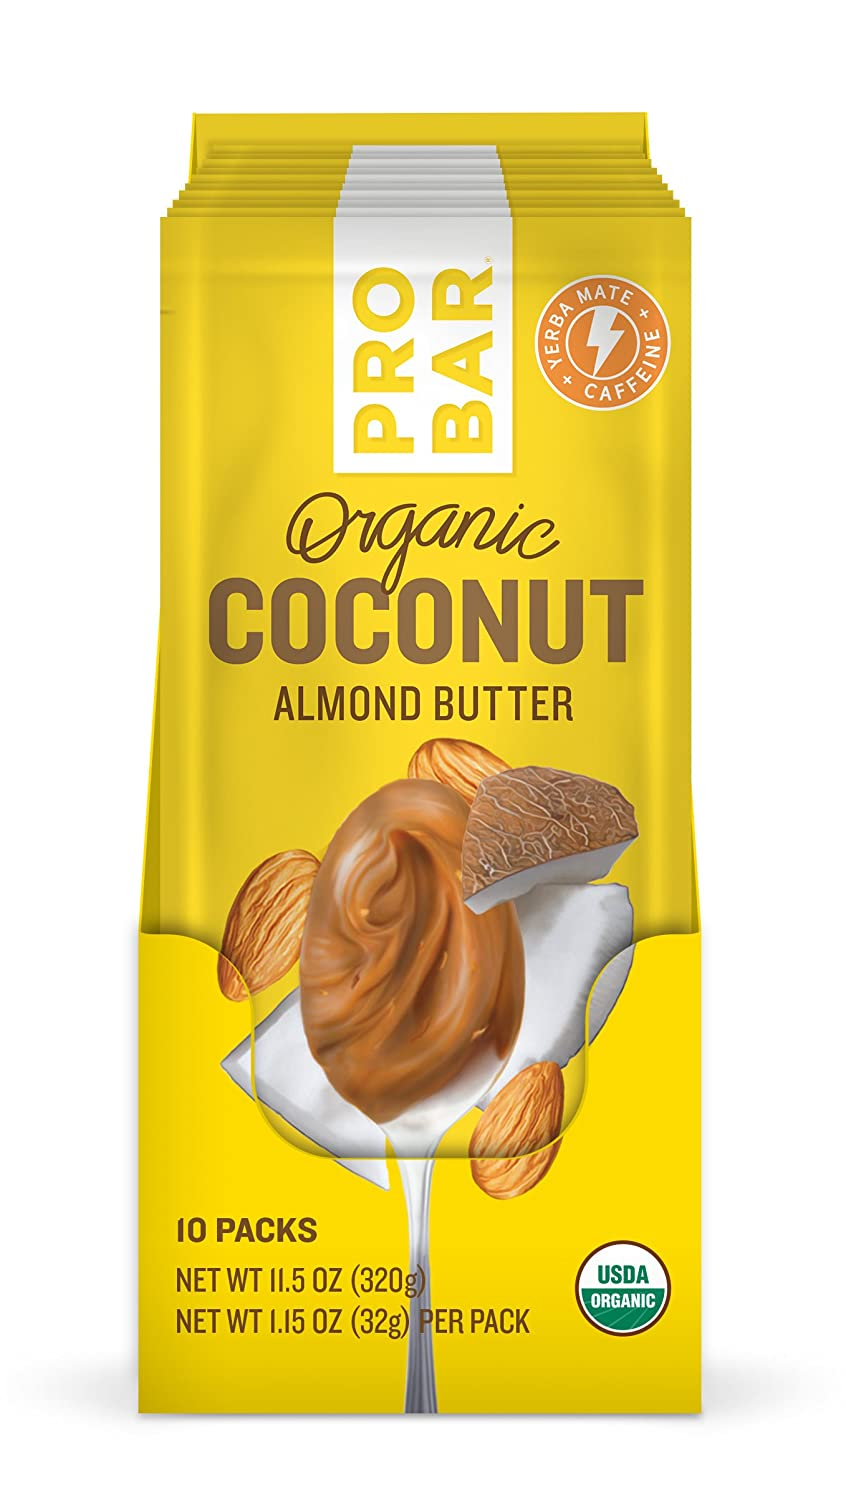 Amazon.com: PROBAR - Nut Butters - Almond Butter, Superfood, 10 Count - USDA Organic, Gluten Free, Organic Plant-Based Butter: Health & Personal Care